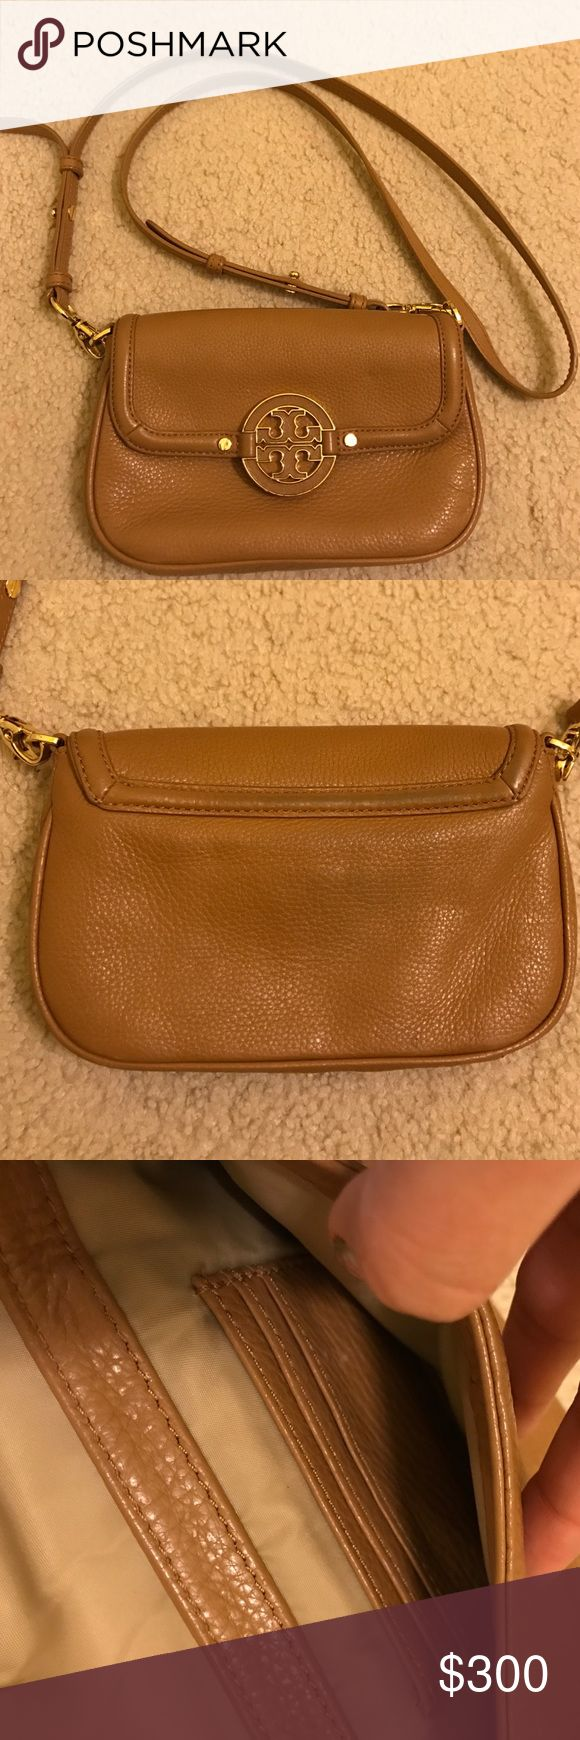 Tory Burch Crossbody Camel Bag This bag has barely been worn. Great color for every season! Leather. 100% authentic I bought it originally from Neiman Marcus. Tory Burch Bags Crossbody Bags